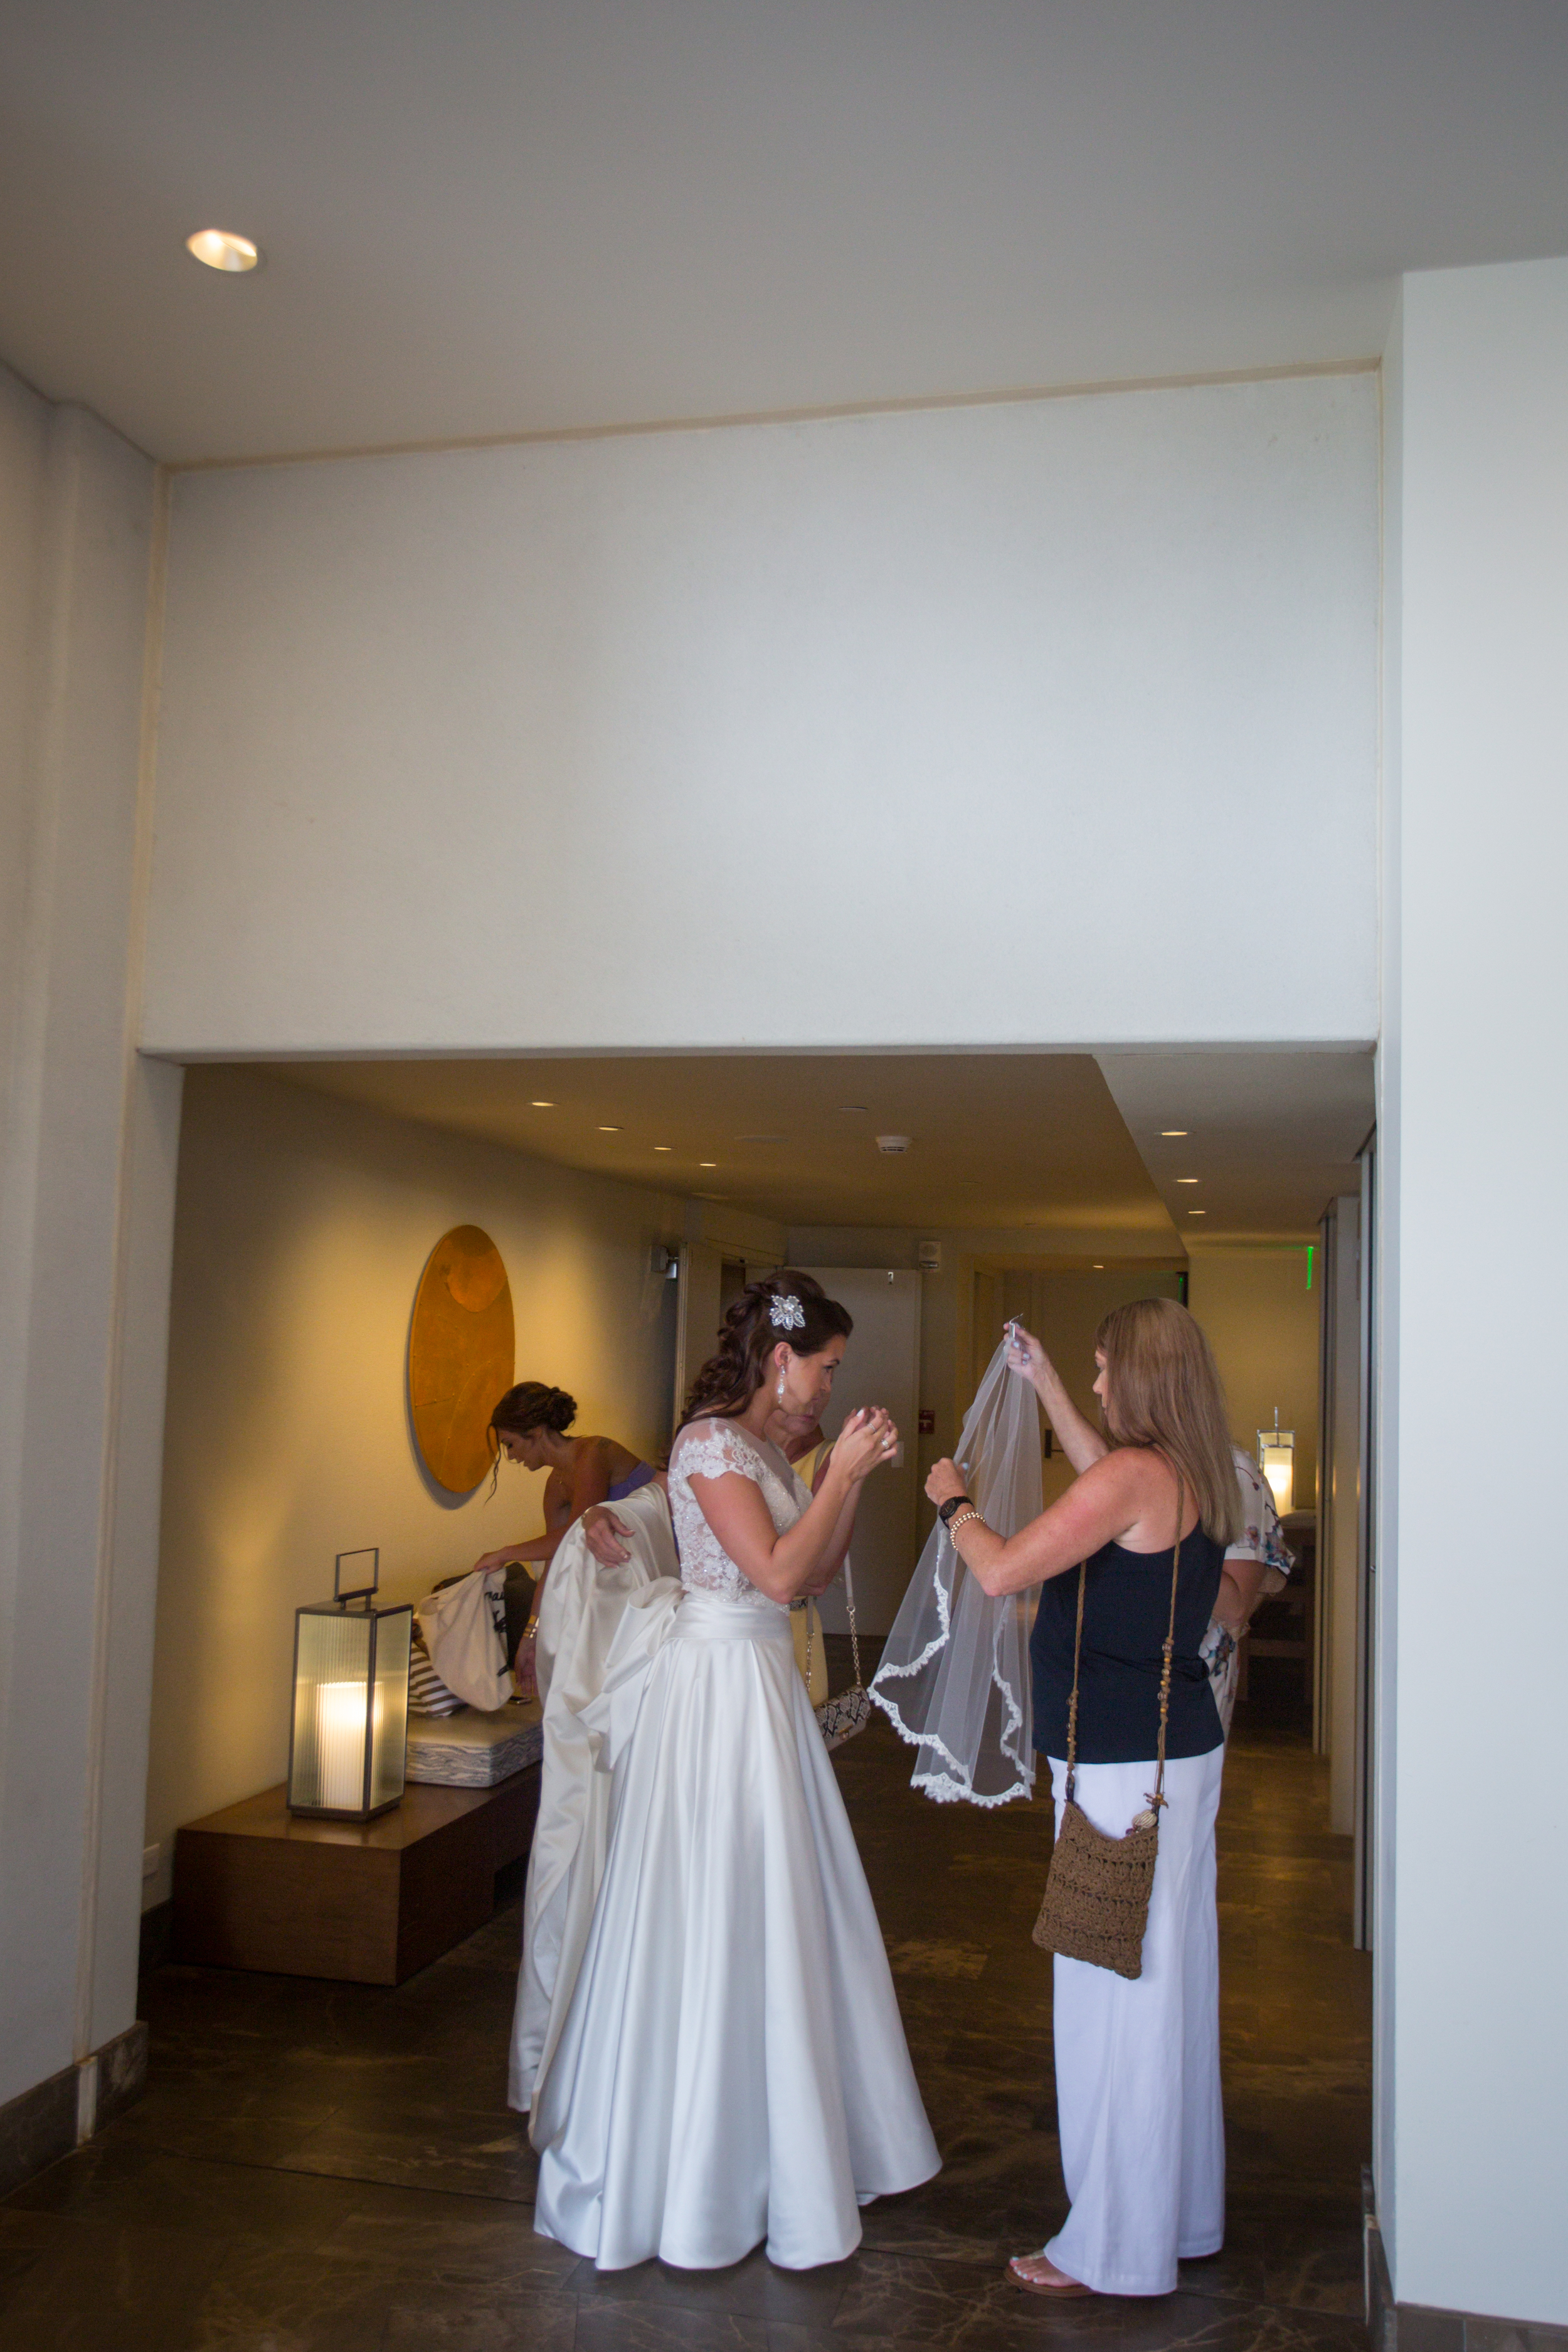 My lovely Aunt helping me with my veil